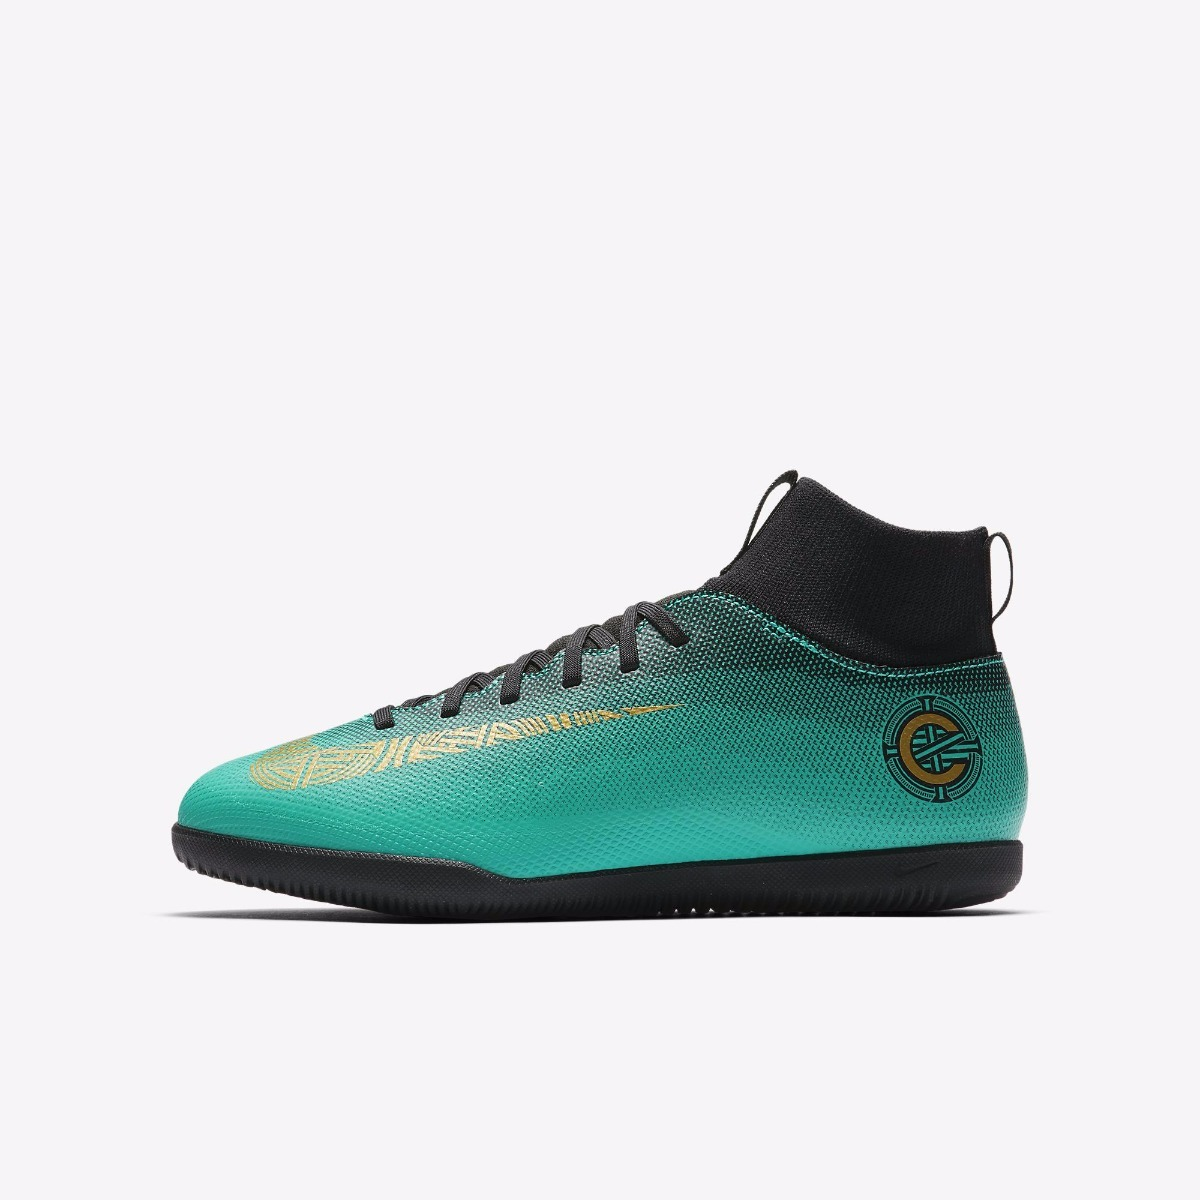 chuteira infantil nike mercurial superfly 6 club cr7 ic + nf. Carregando  zoom. 21d25ac82405c